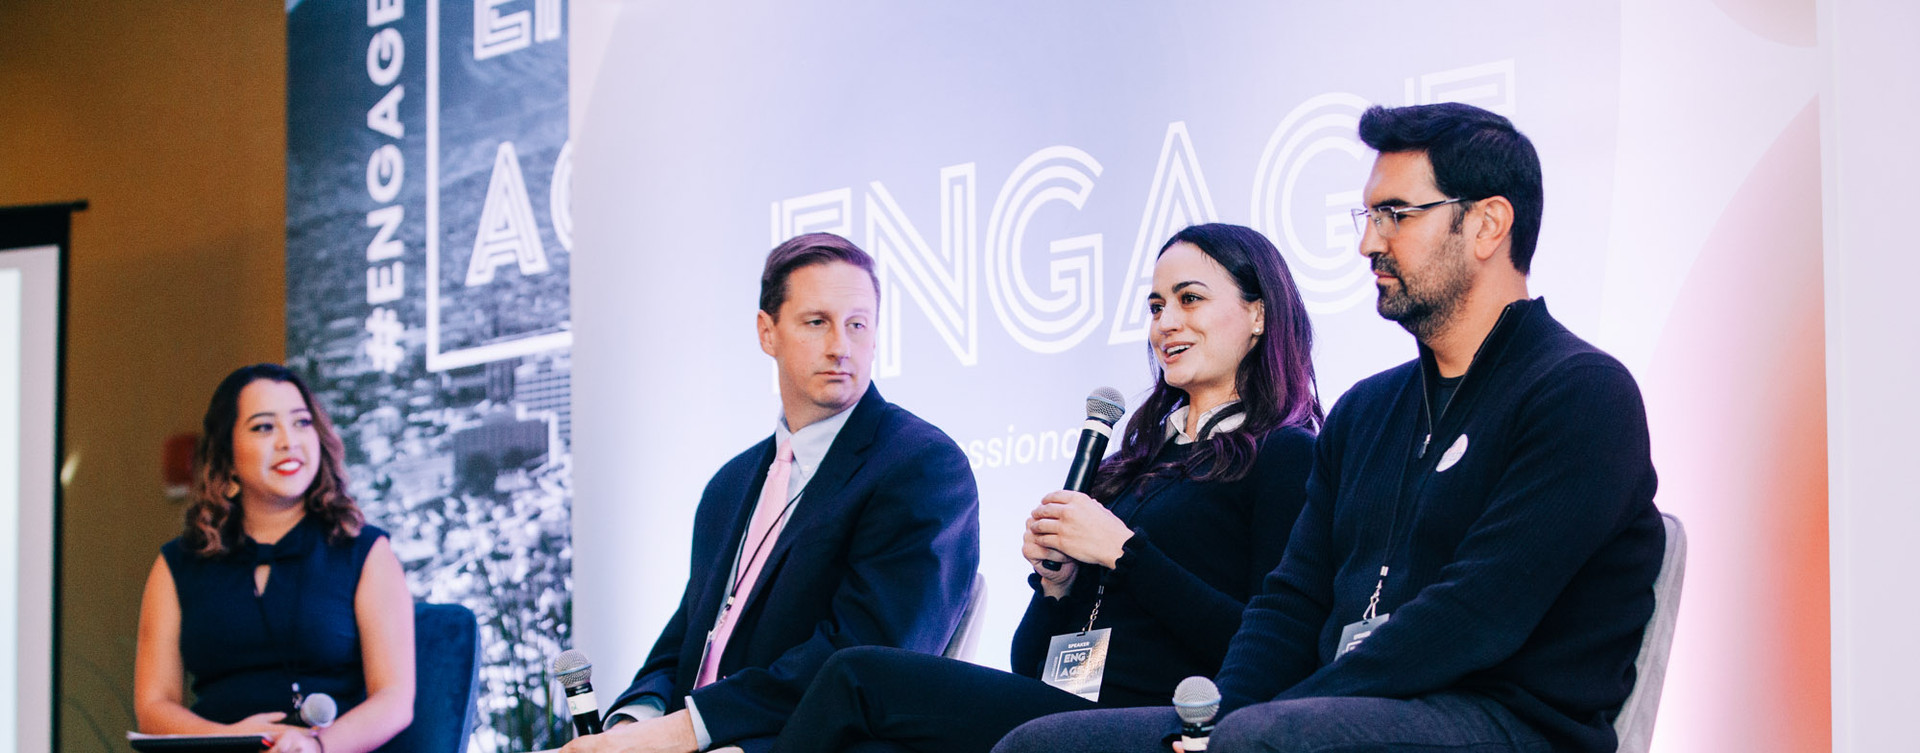 engage2018-preview-6.jpg